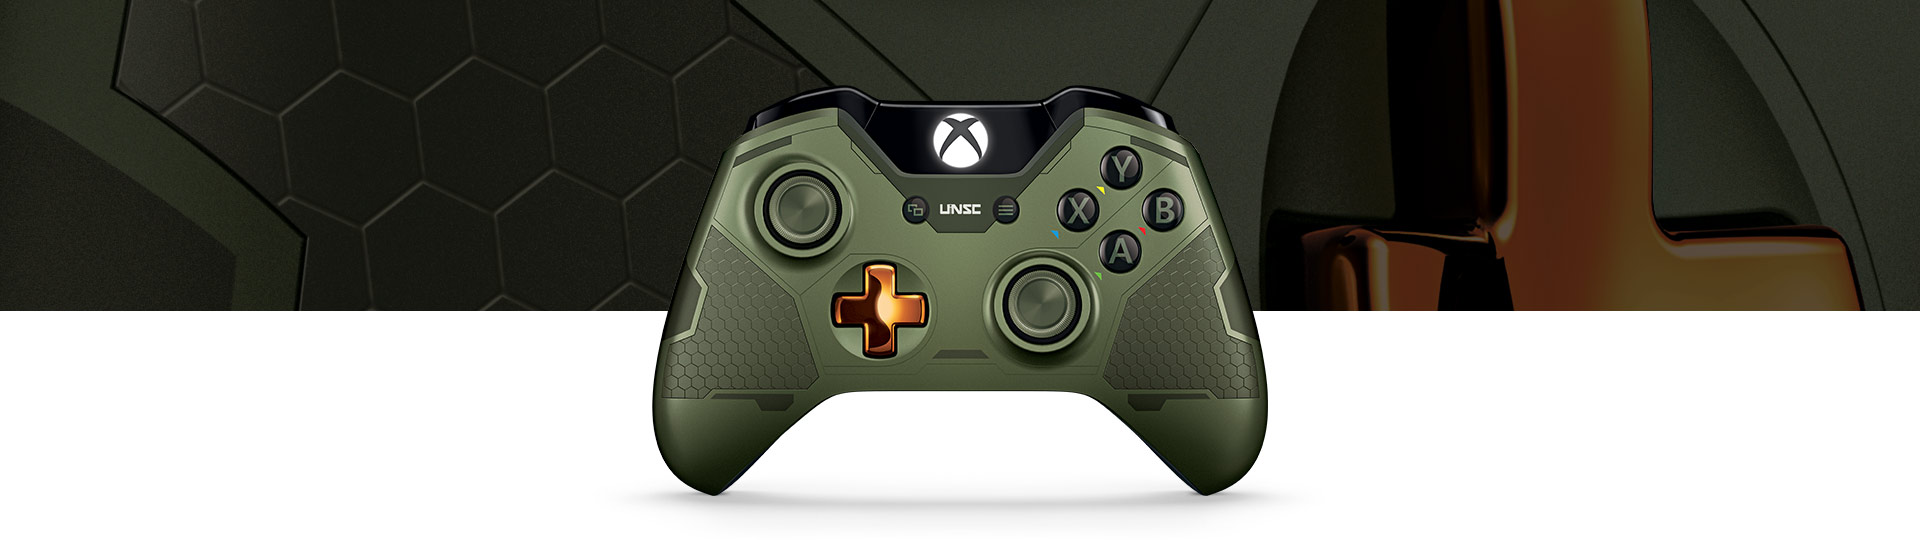 Limited Edition Halo 5: Guardians – trådløs Master Chief-controller til Xbox One